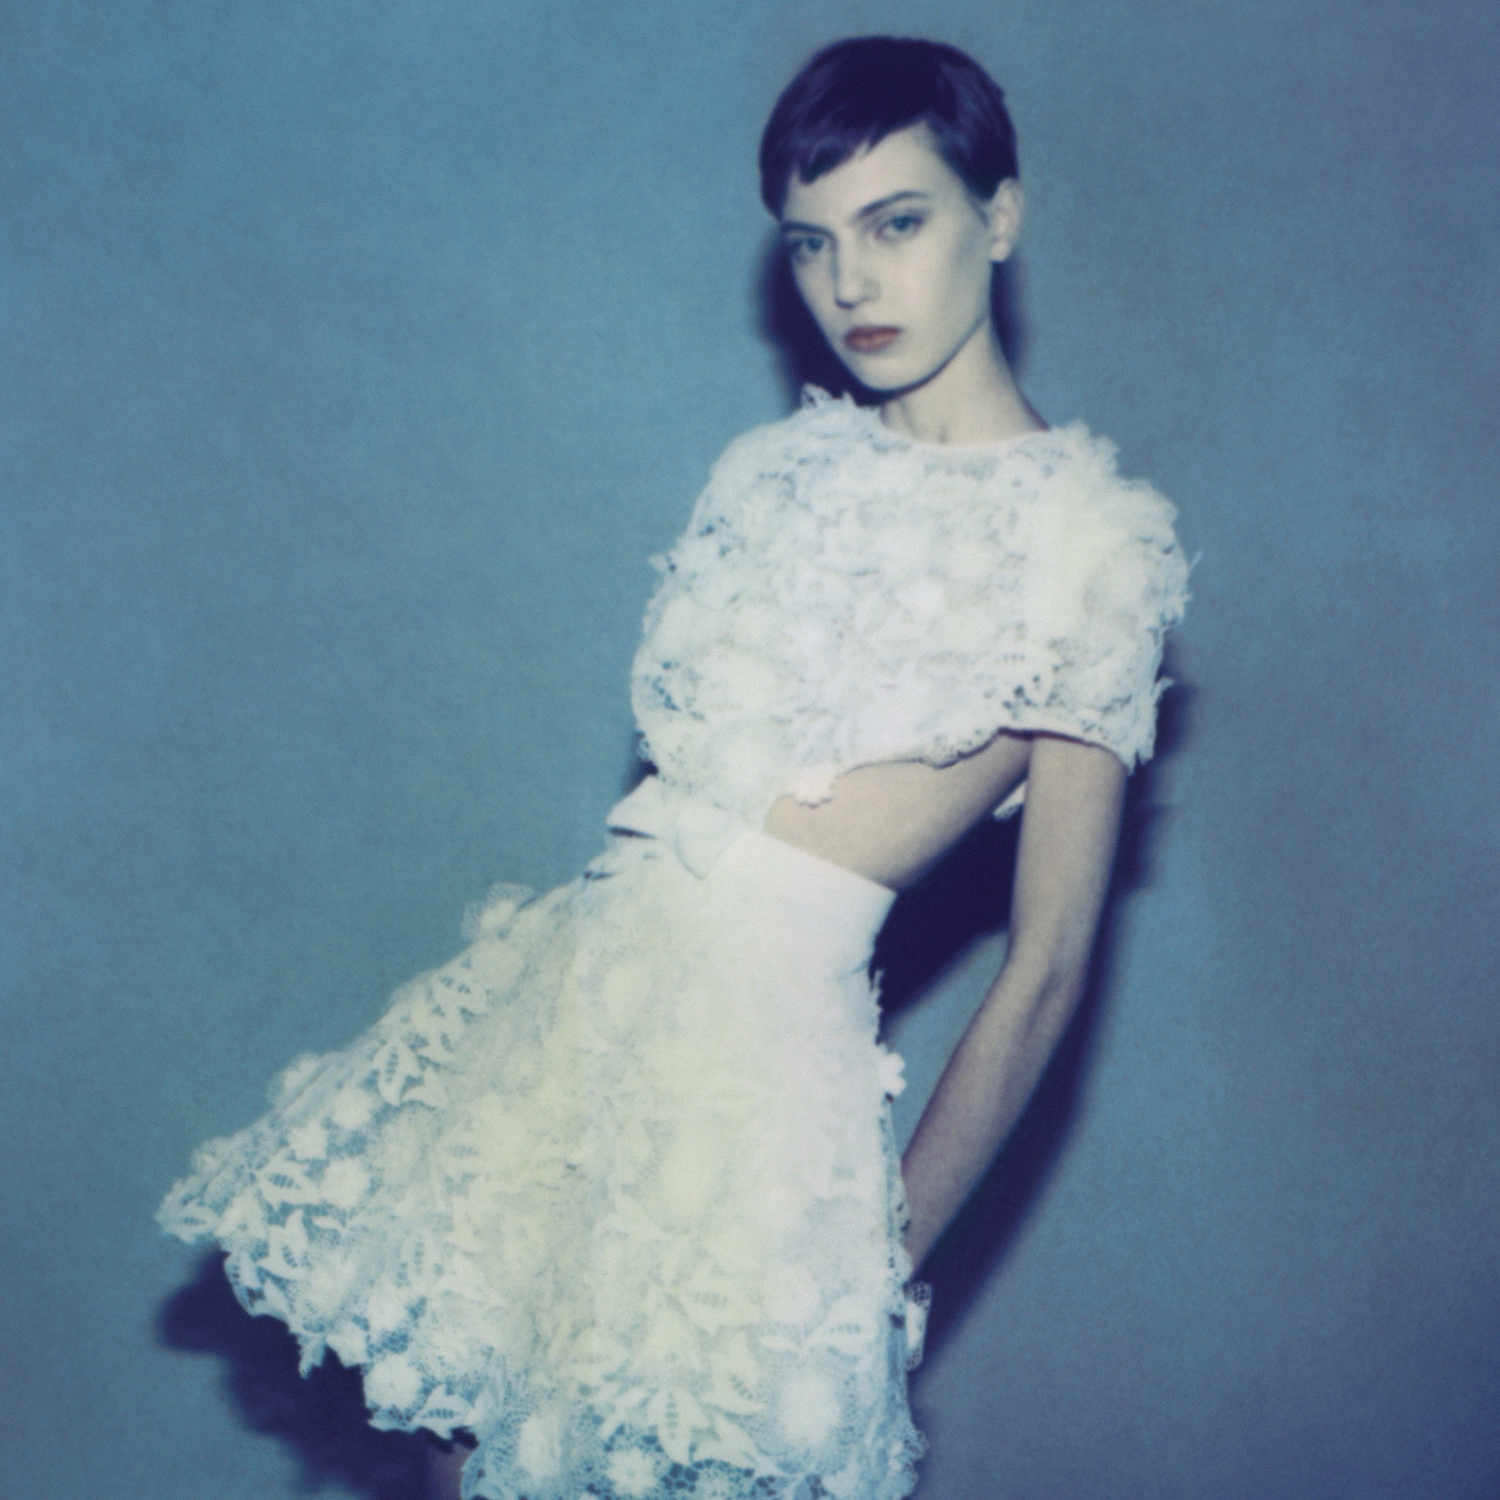 27 - Givenchy Haute Couture - Neil Krug.jpg